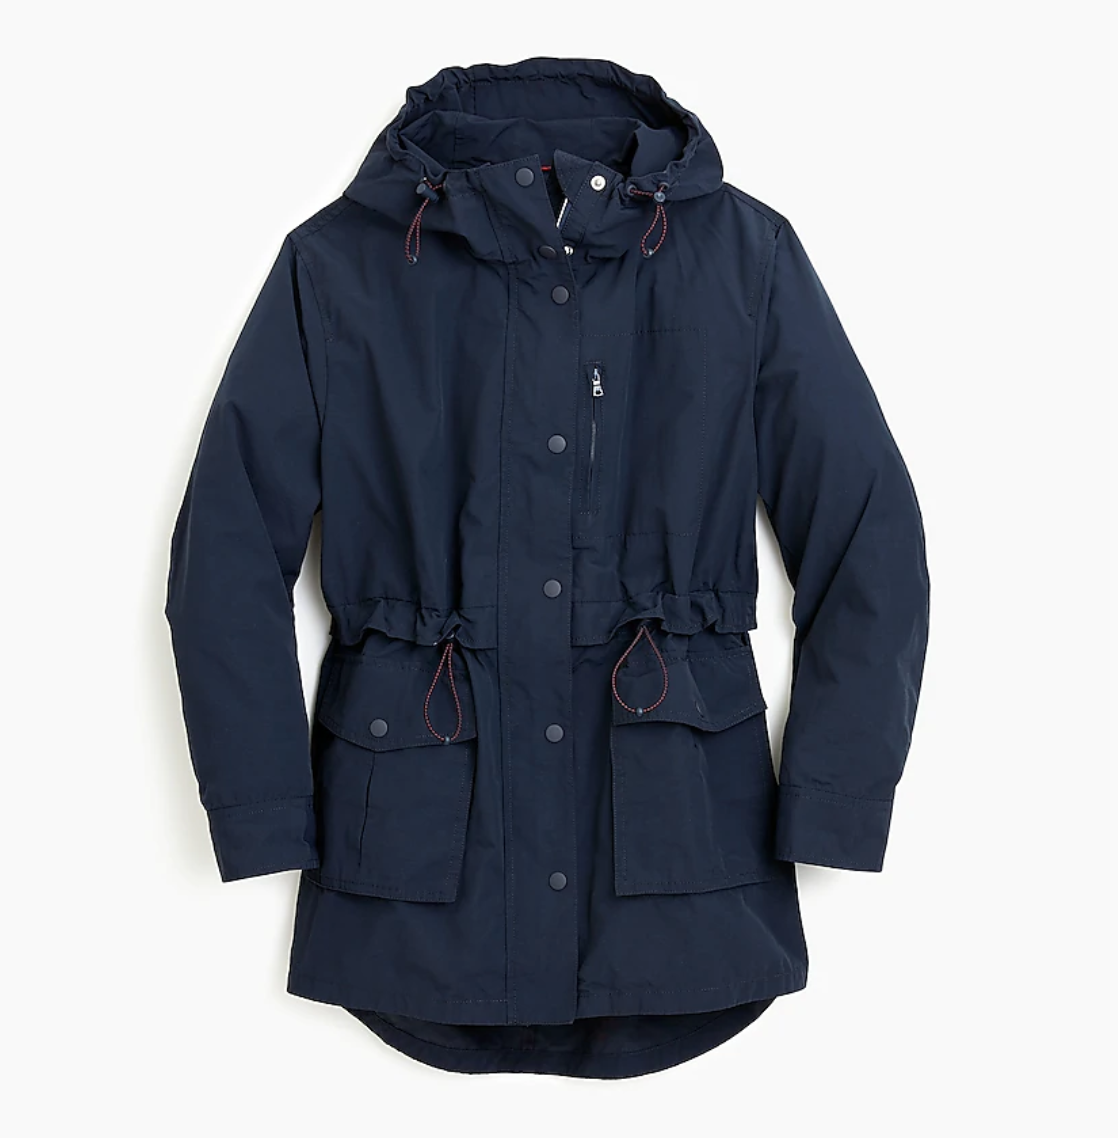 J Crew Perfect Rain Jacket in Navy